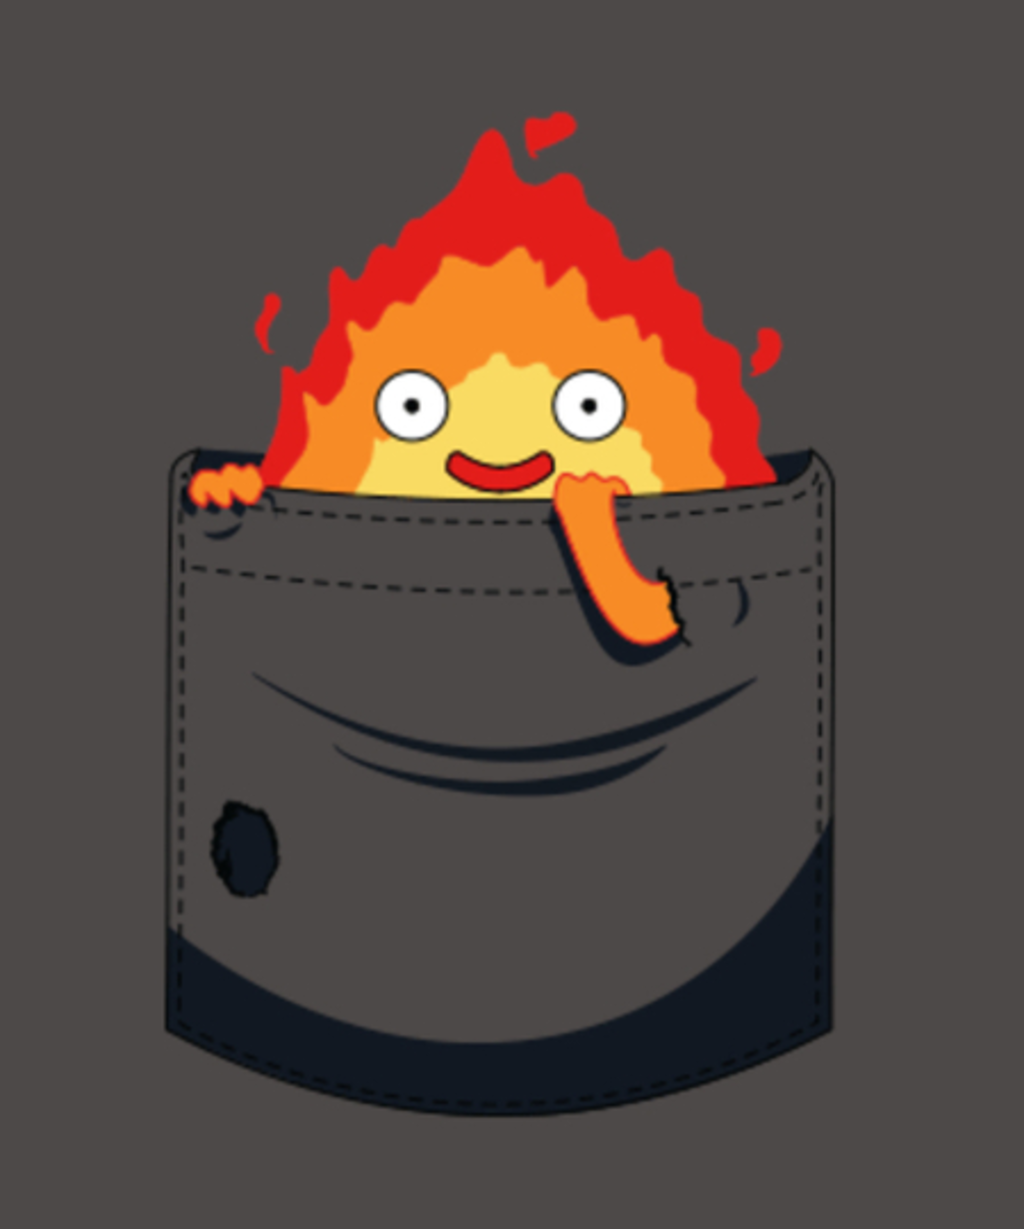 Qwertee: Fire pocket